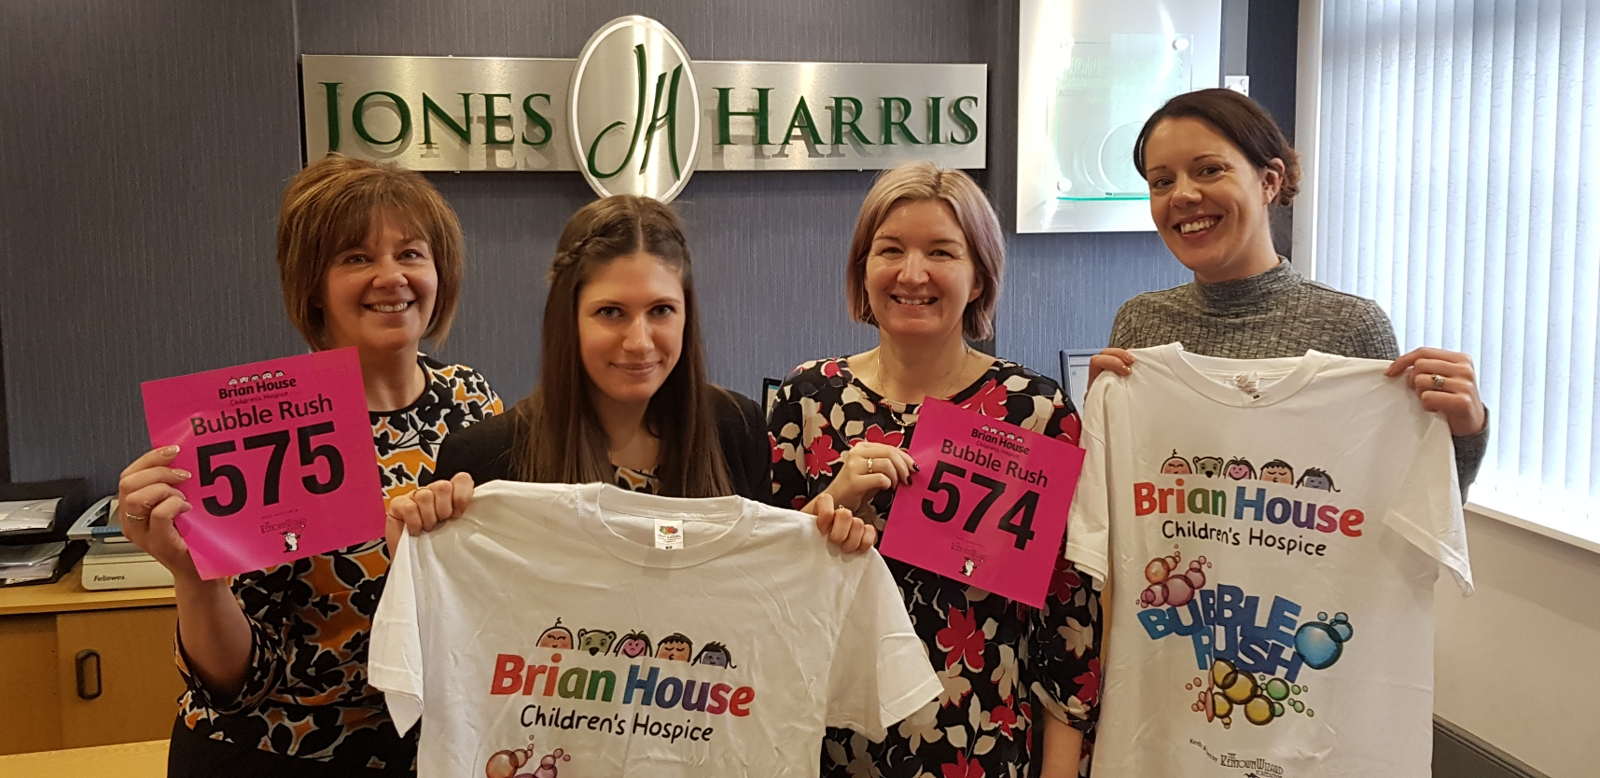 A group of ladies is flying the flag for Jones Harris, when they take part in the annual Bubble Rush 5K event this April.